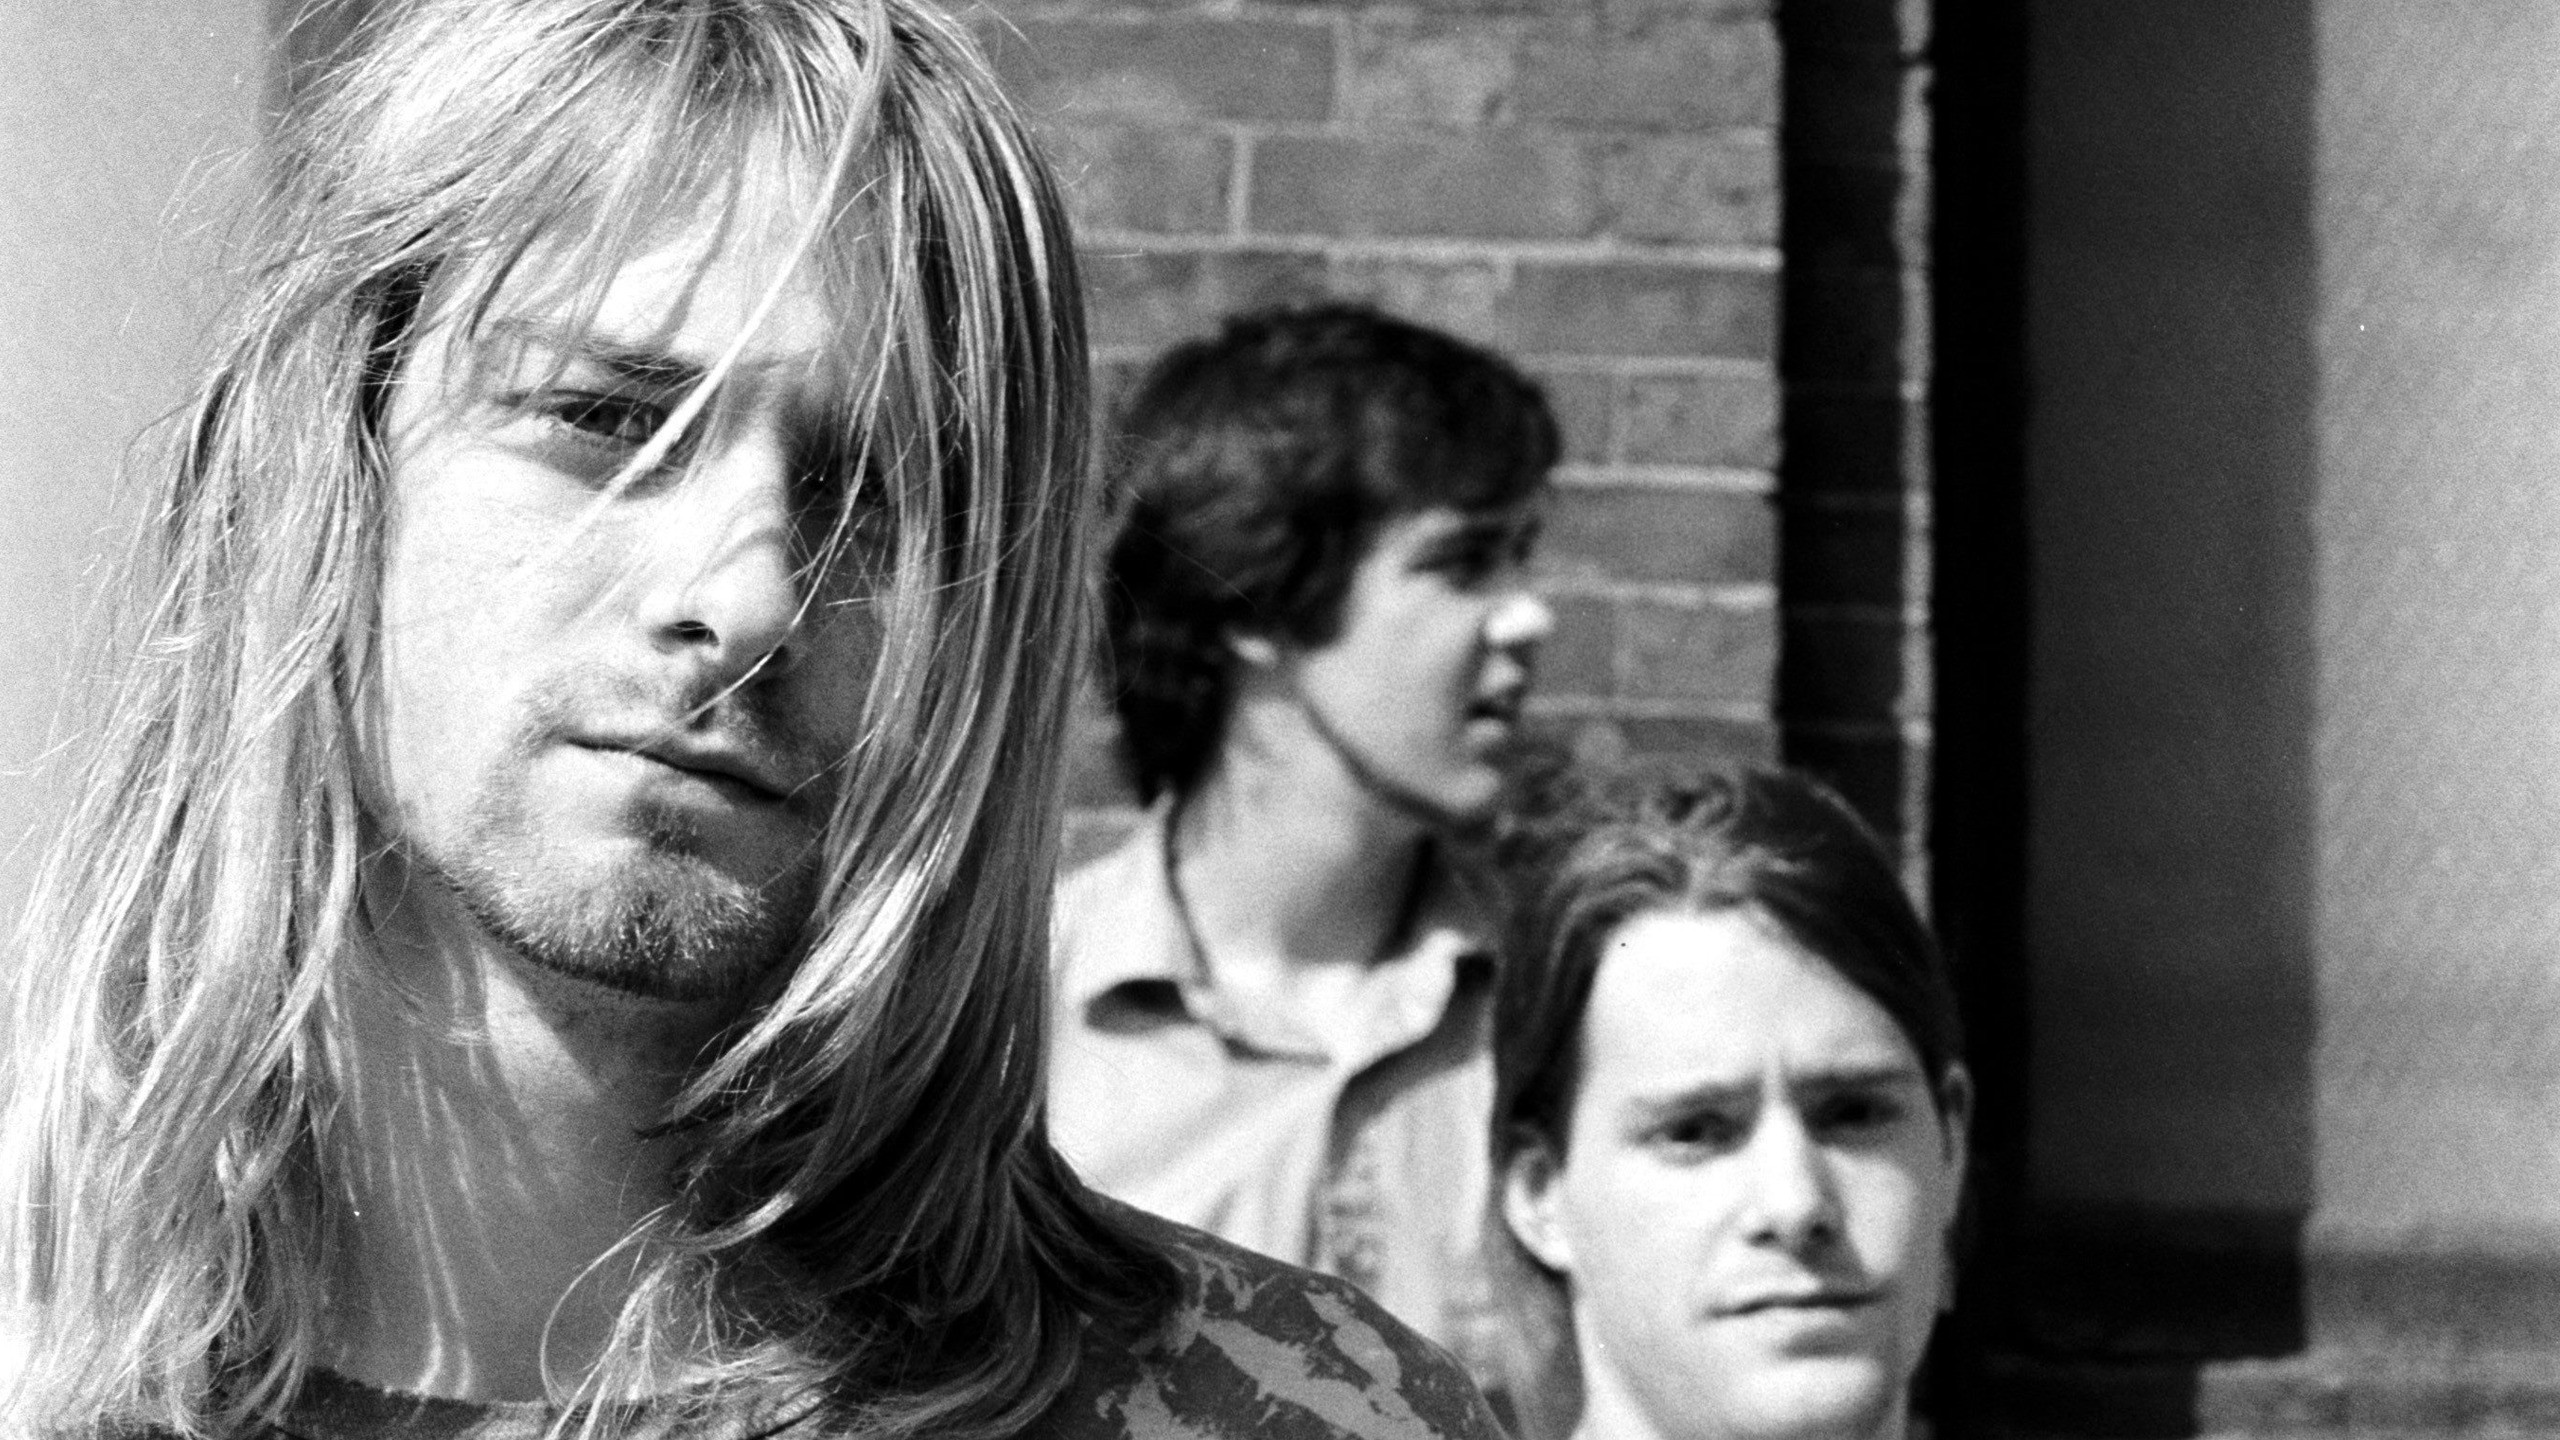 wallpaper.wiki-Nirvana-Rare-Photo-With-Chad-Channing-